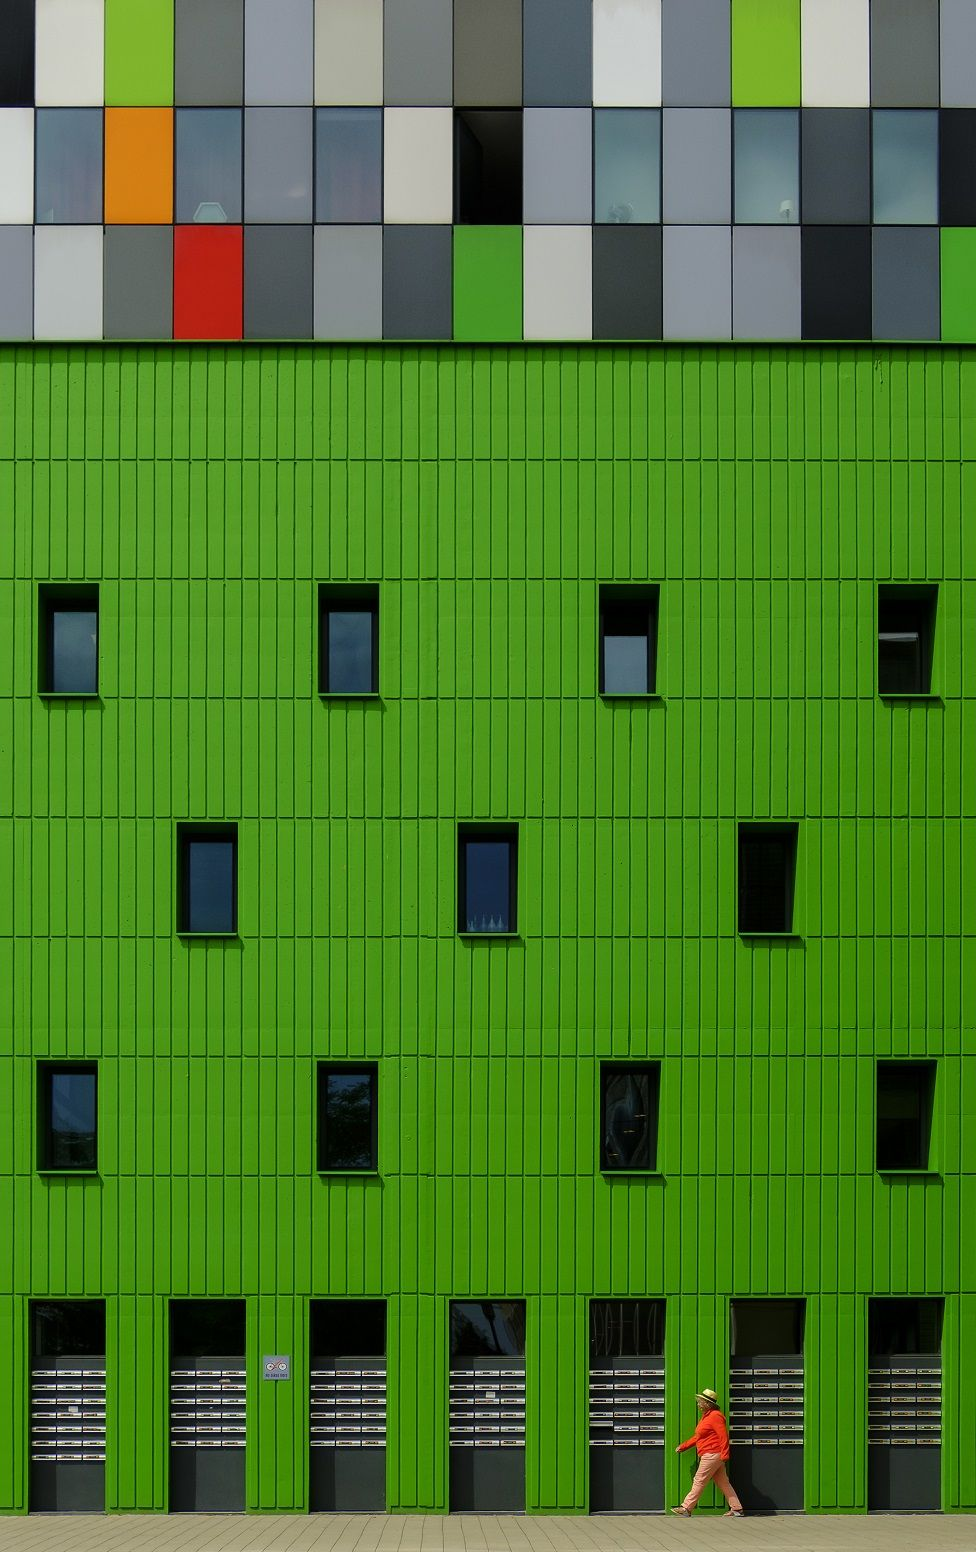 A building with a green exterior wall